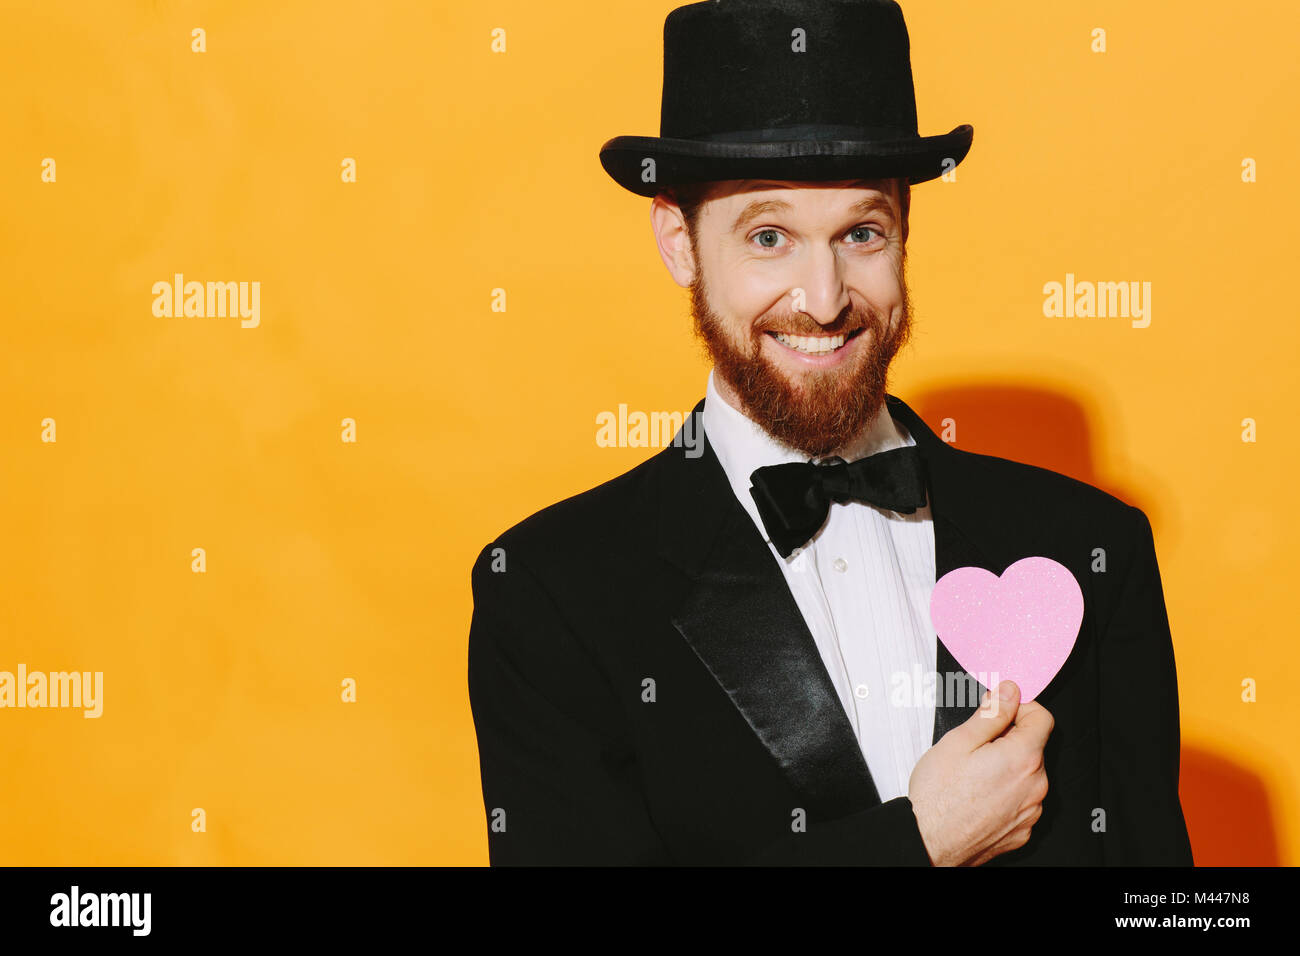 Espérons smiling man with top hat holding a pink heart, be my valentine Photo Stock